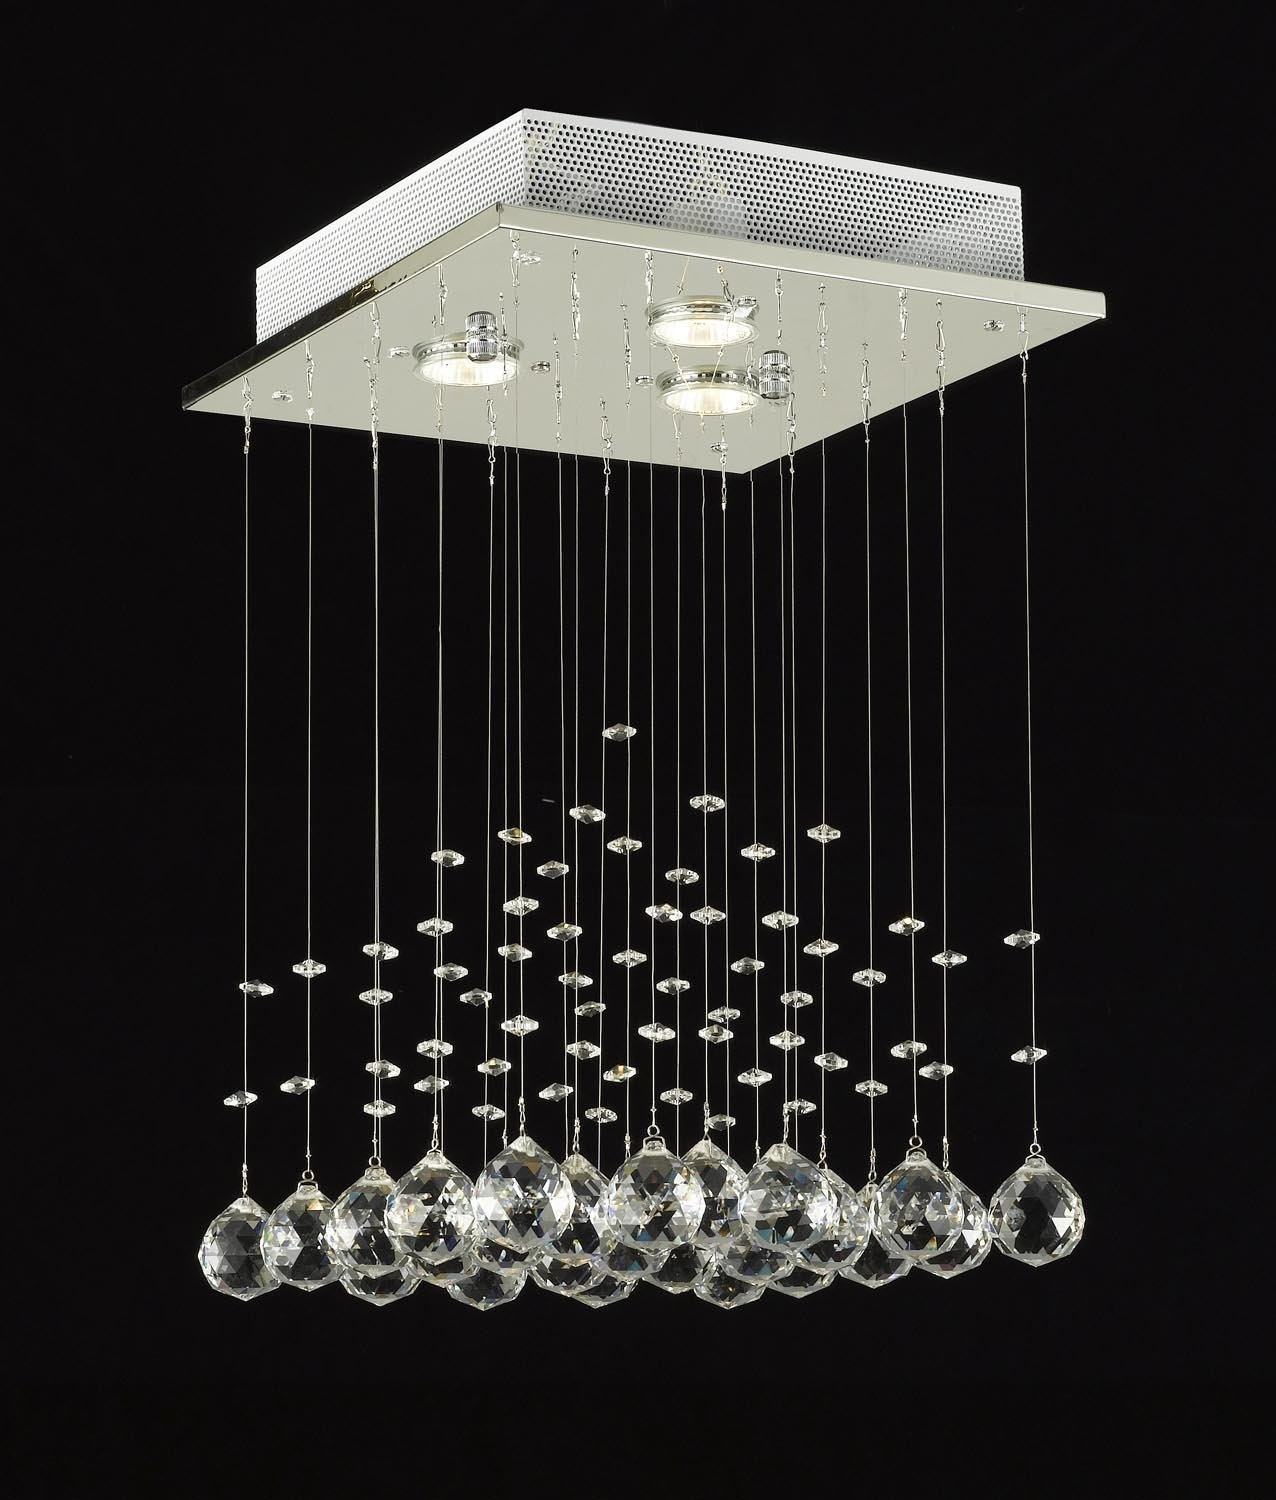 Modern Chandelier Rain Drop Lighting Crystal Ball Fixture Pendant Pertaining To Modern Small Chandeliers (#8 of 12)